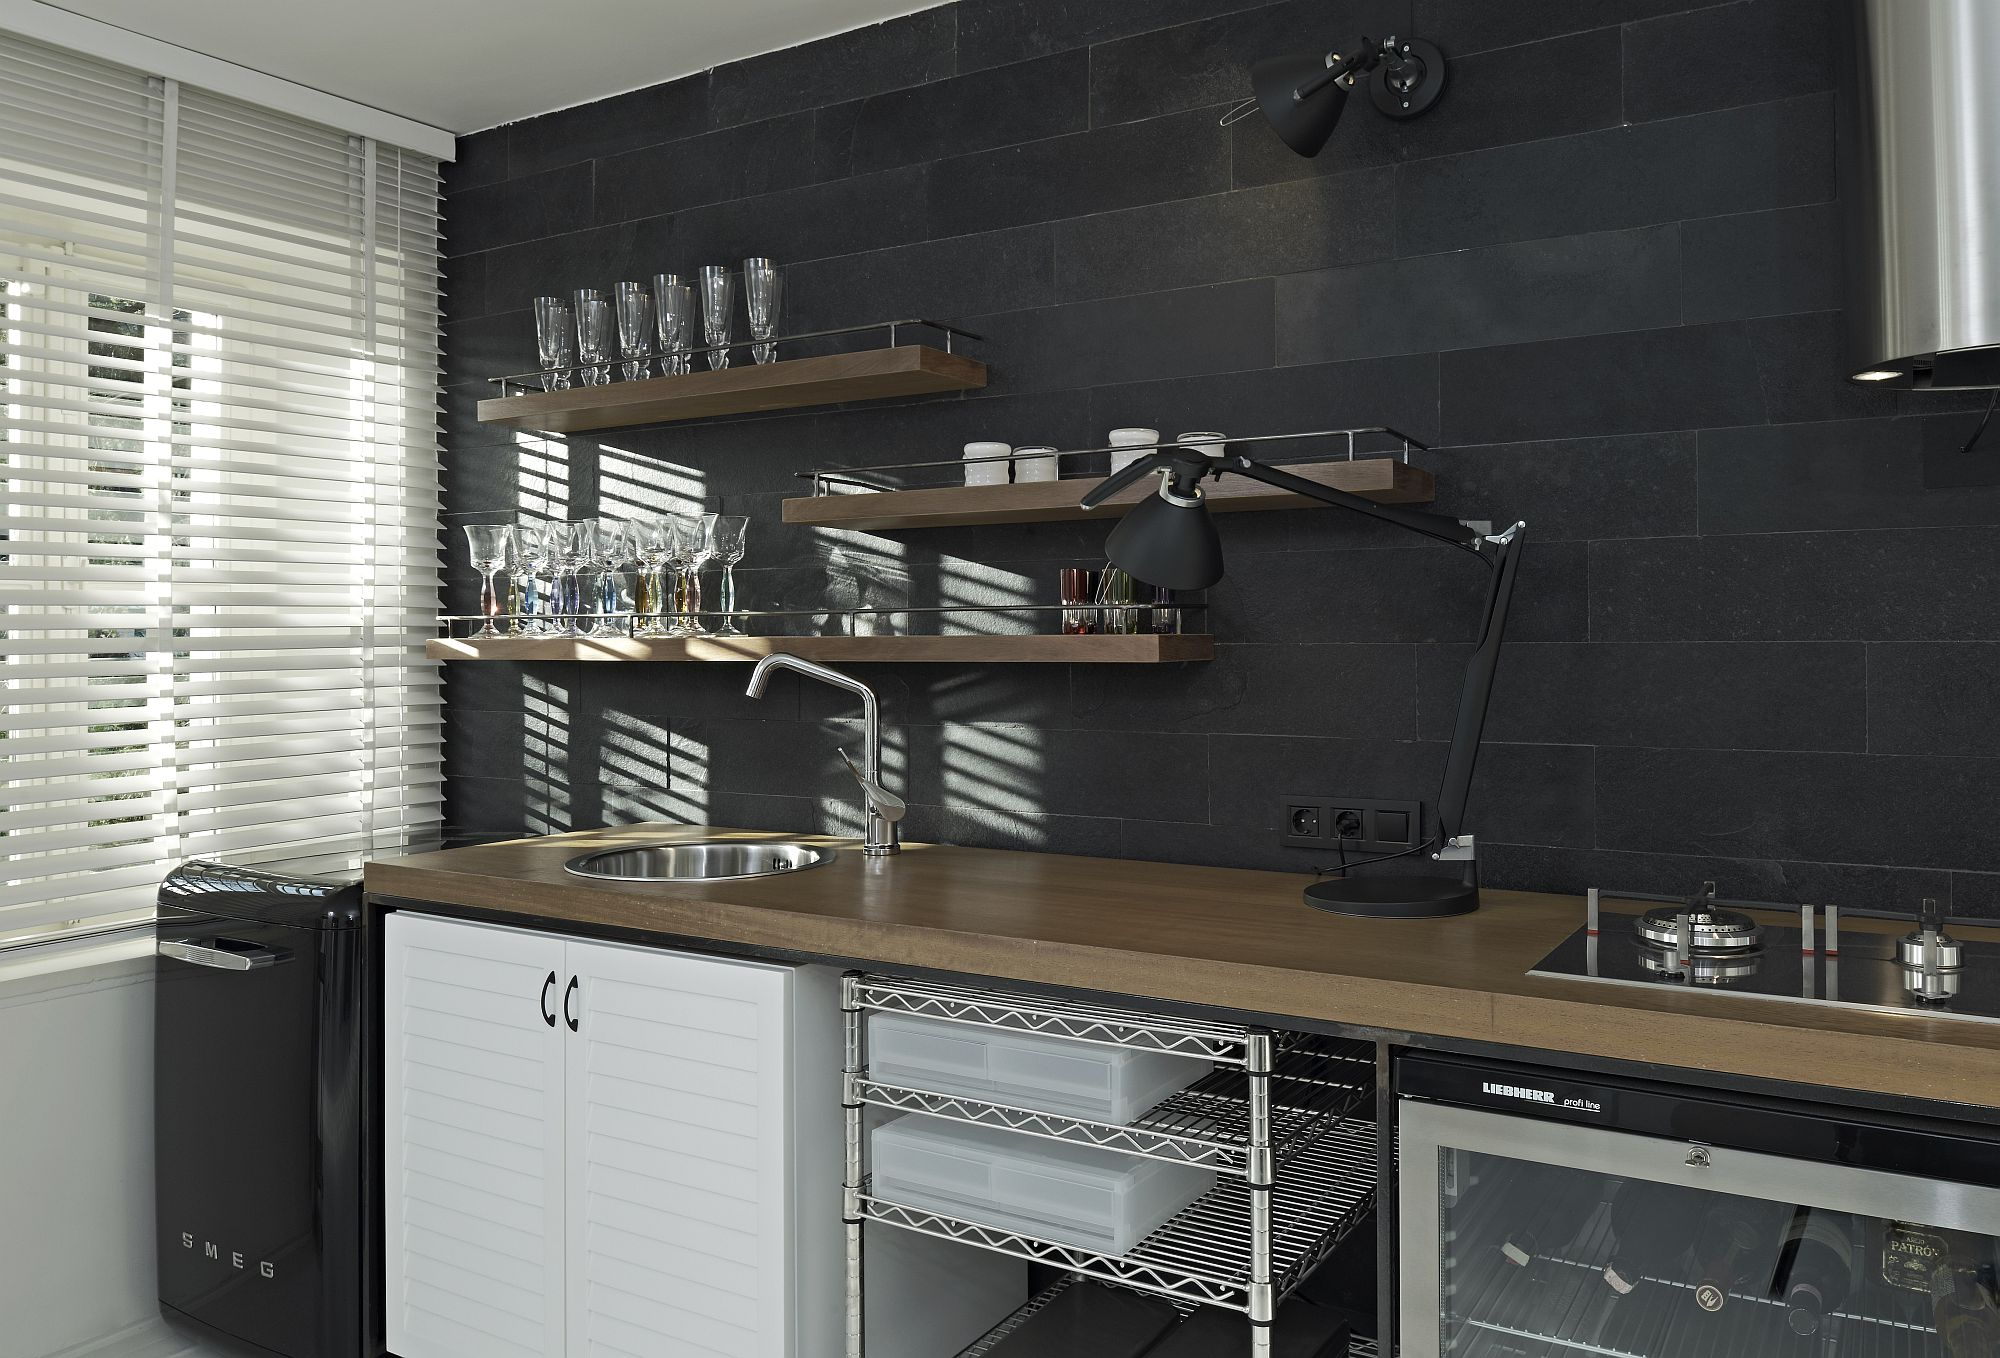 Dark accent wall offers the perfect backdrop for the kitchenette